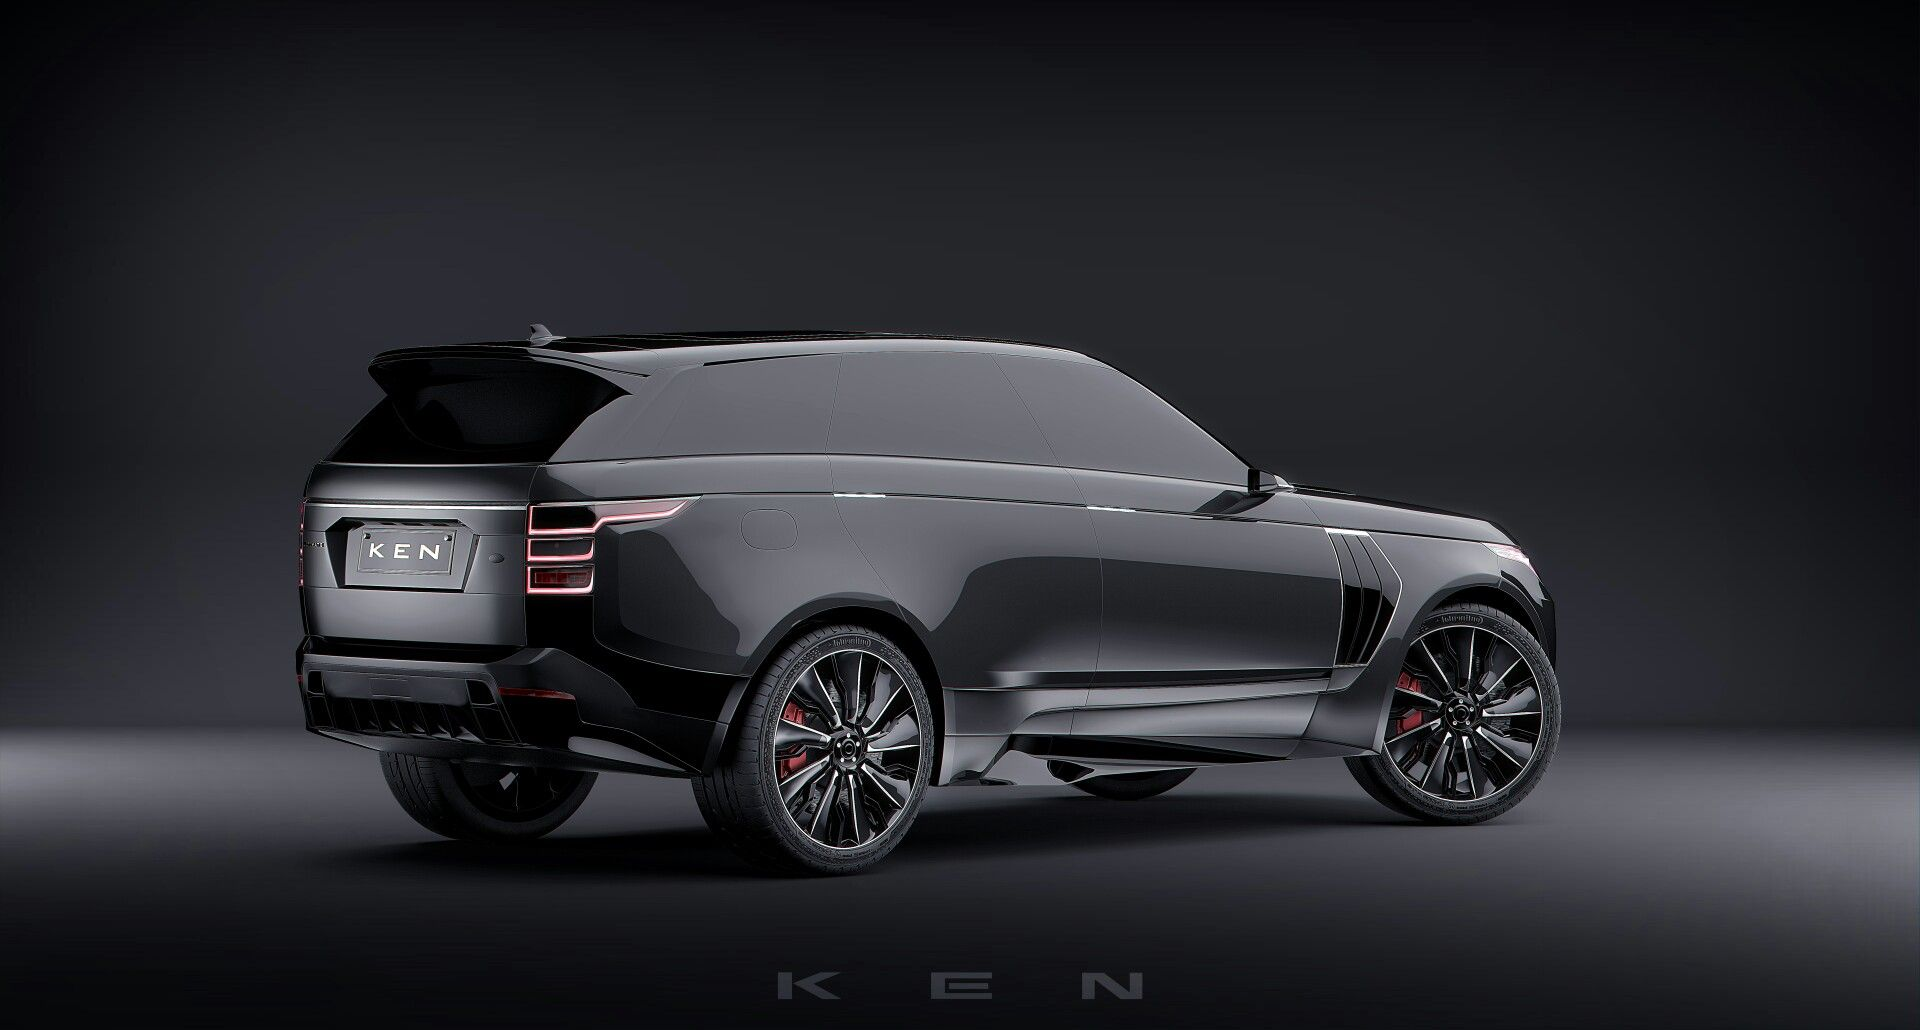 Pin by Ken Davie on My Very Own Concept of a Range Rover